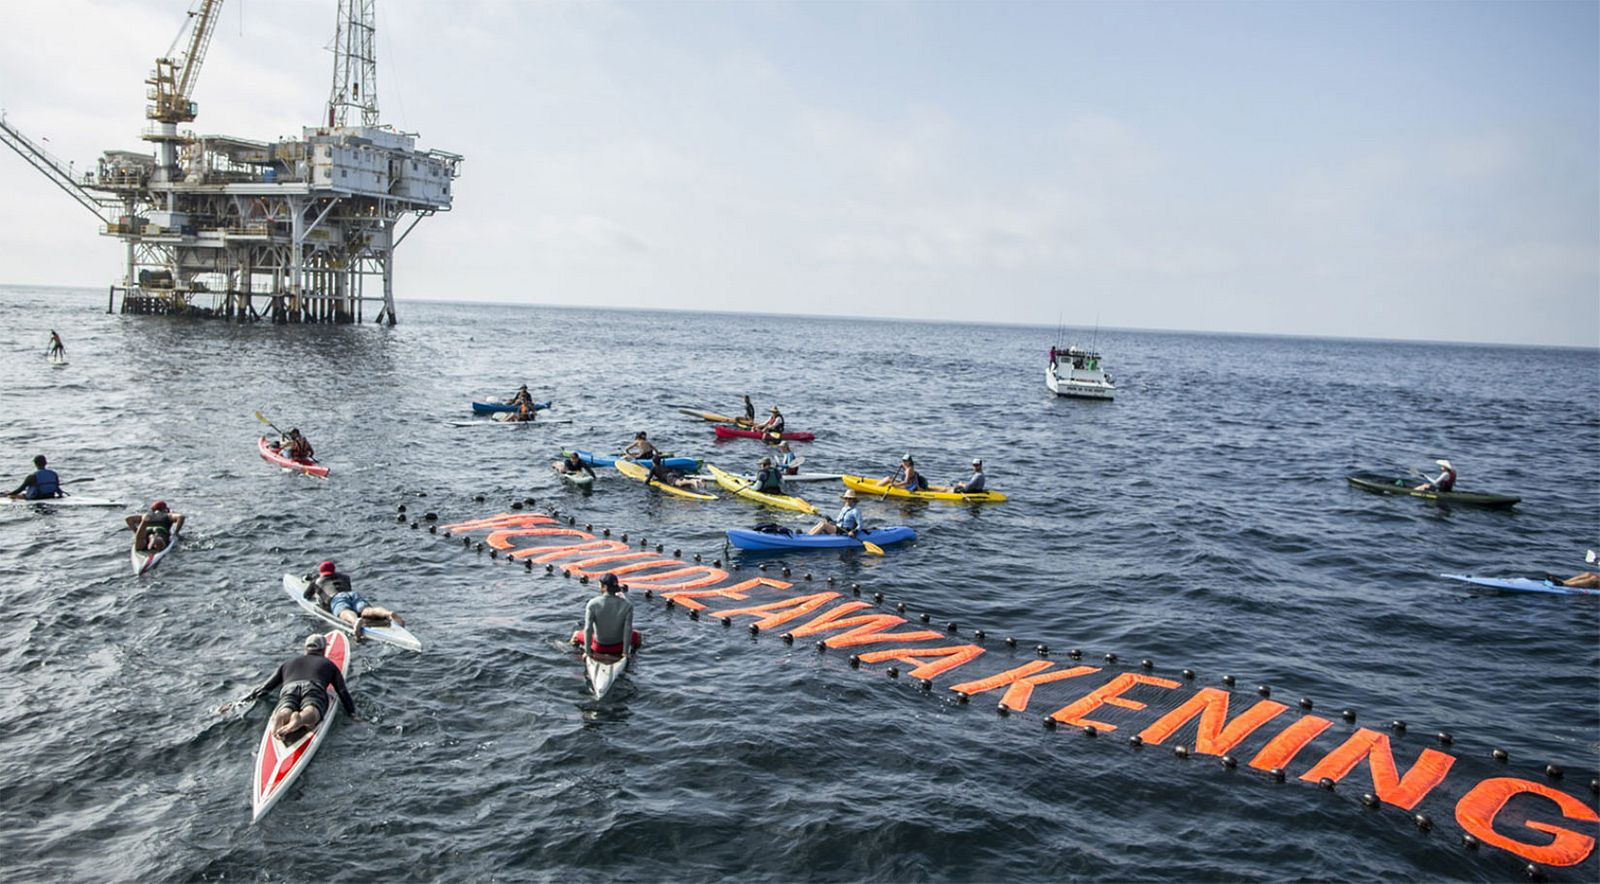 A floating banner reading '#CrudeAwakening' floats on the ocean, an oil rig in the background, with kayakers surrounding the banner.